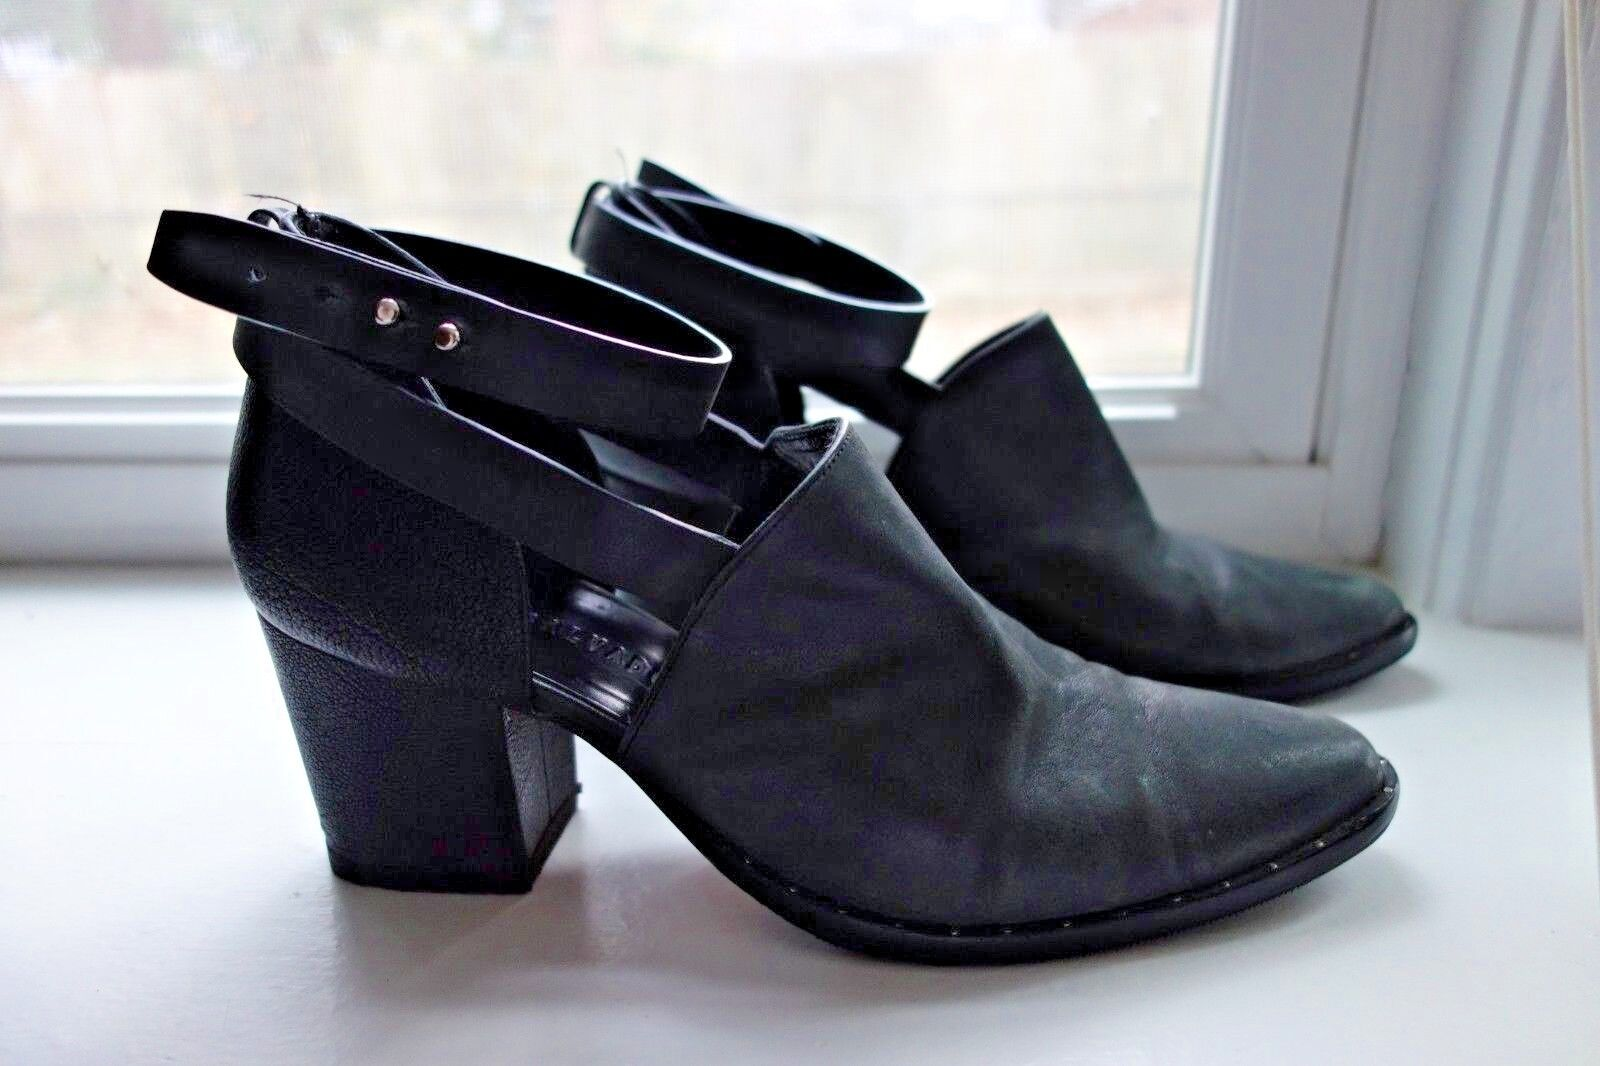 Frota Salvador Say Mid Heel Cutout Cutout Cutout Ankle Stiefel 9.5M 0761bf